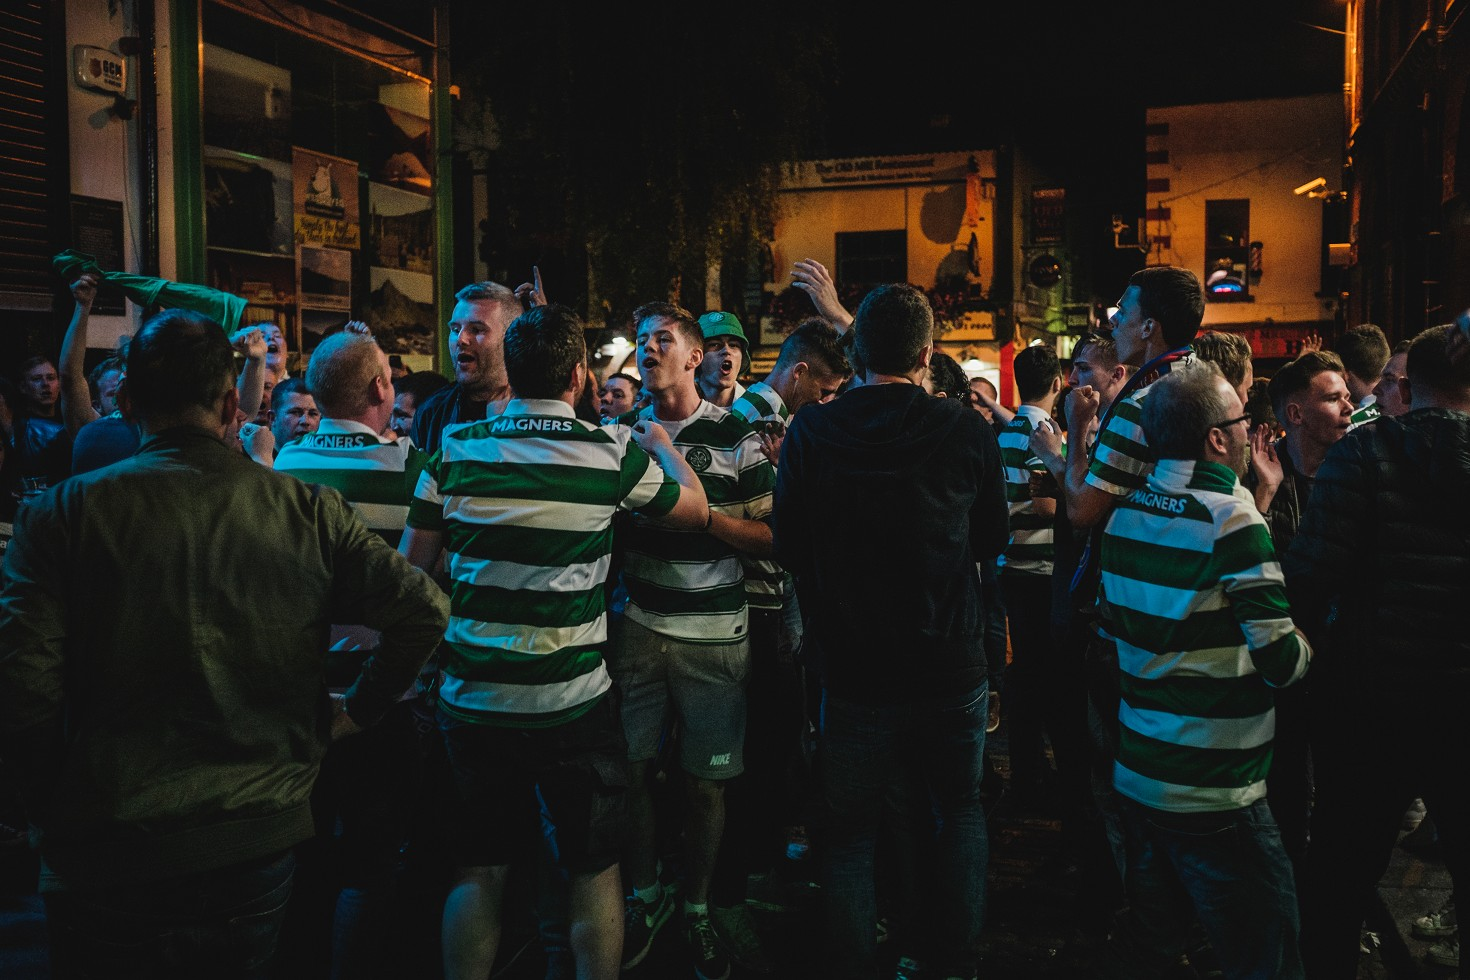 Celtic-Barca-Barcelona-Dublin-Temple-Bar-Aviva-Ireland-Fans (55 von 68)